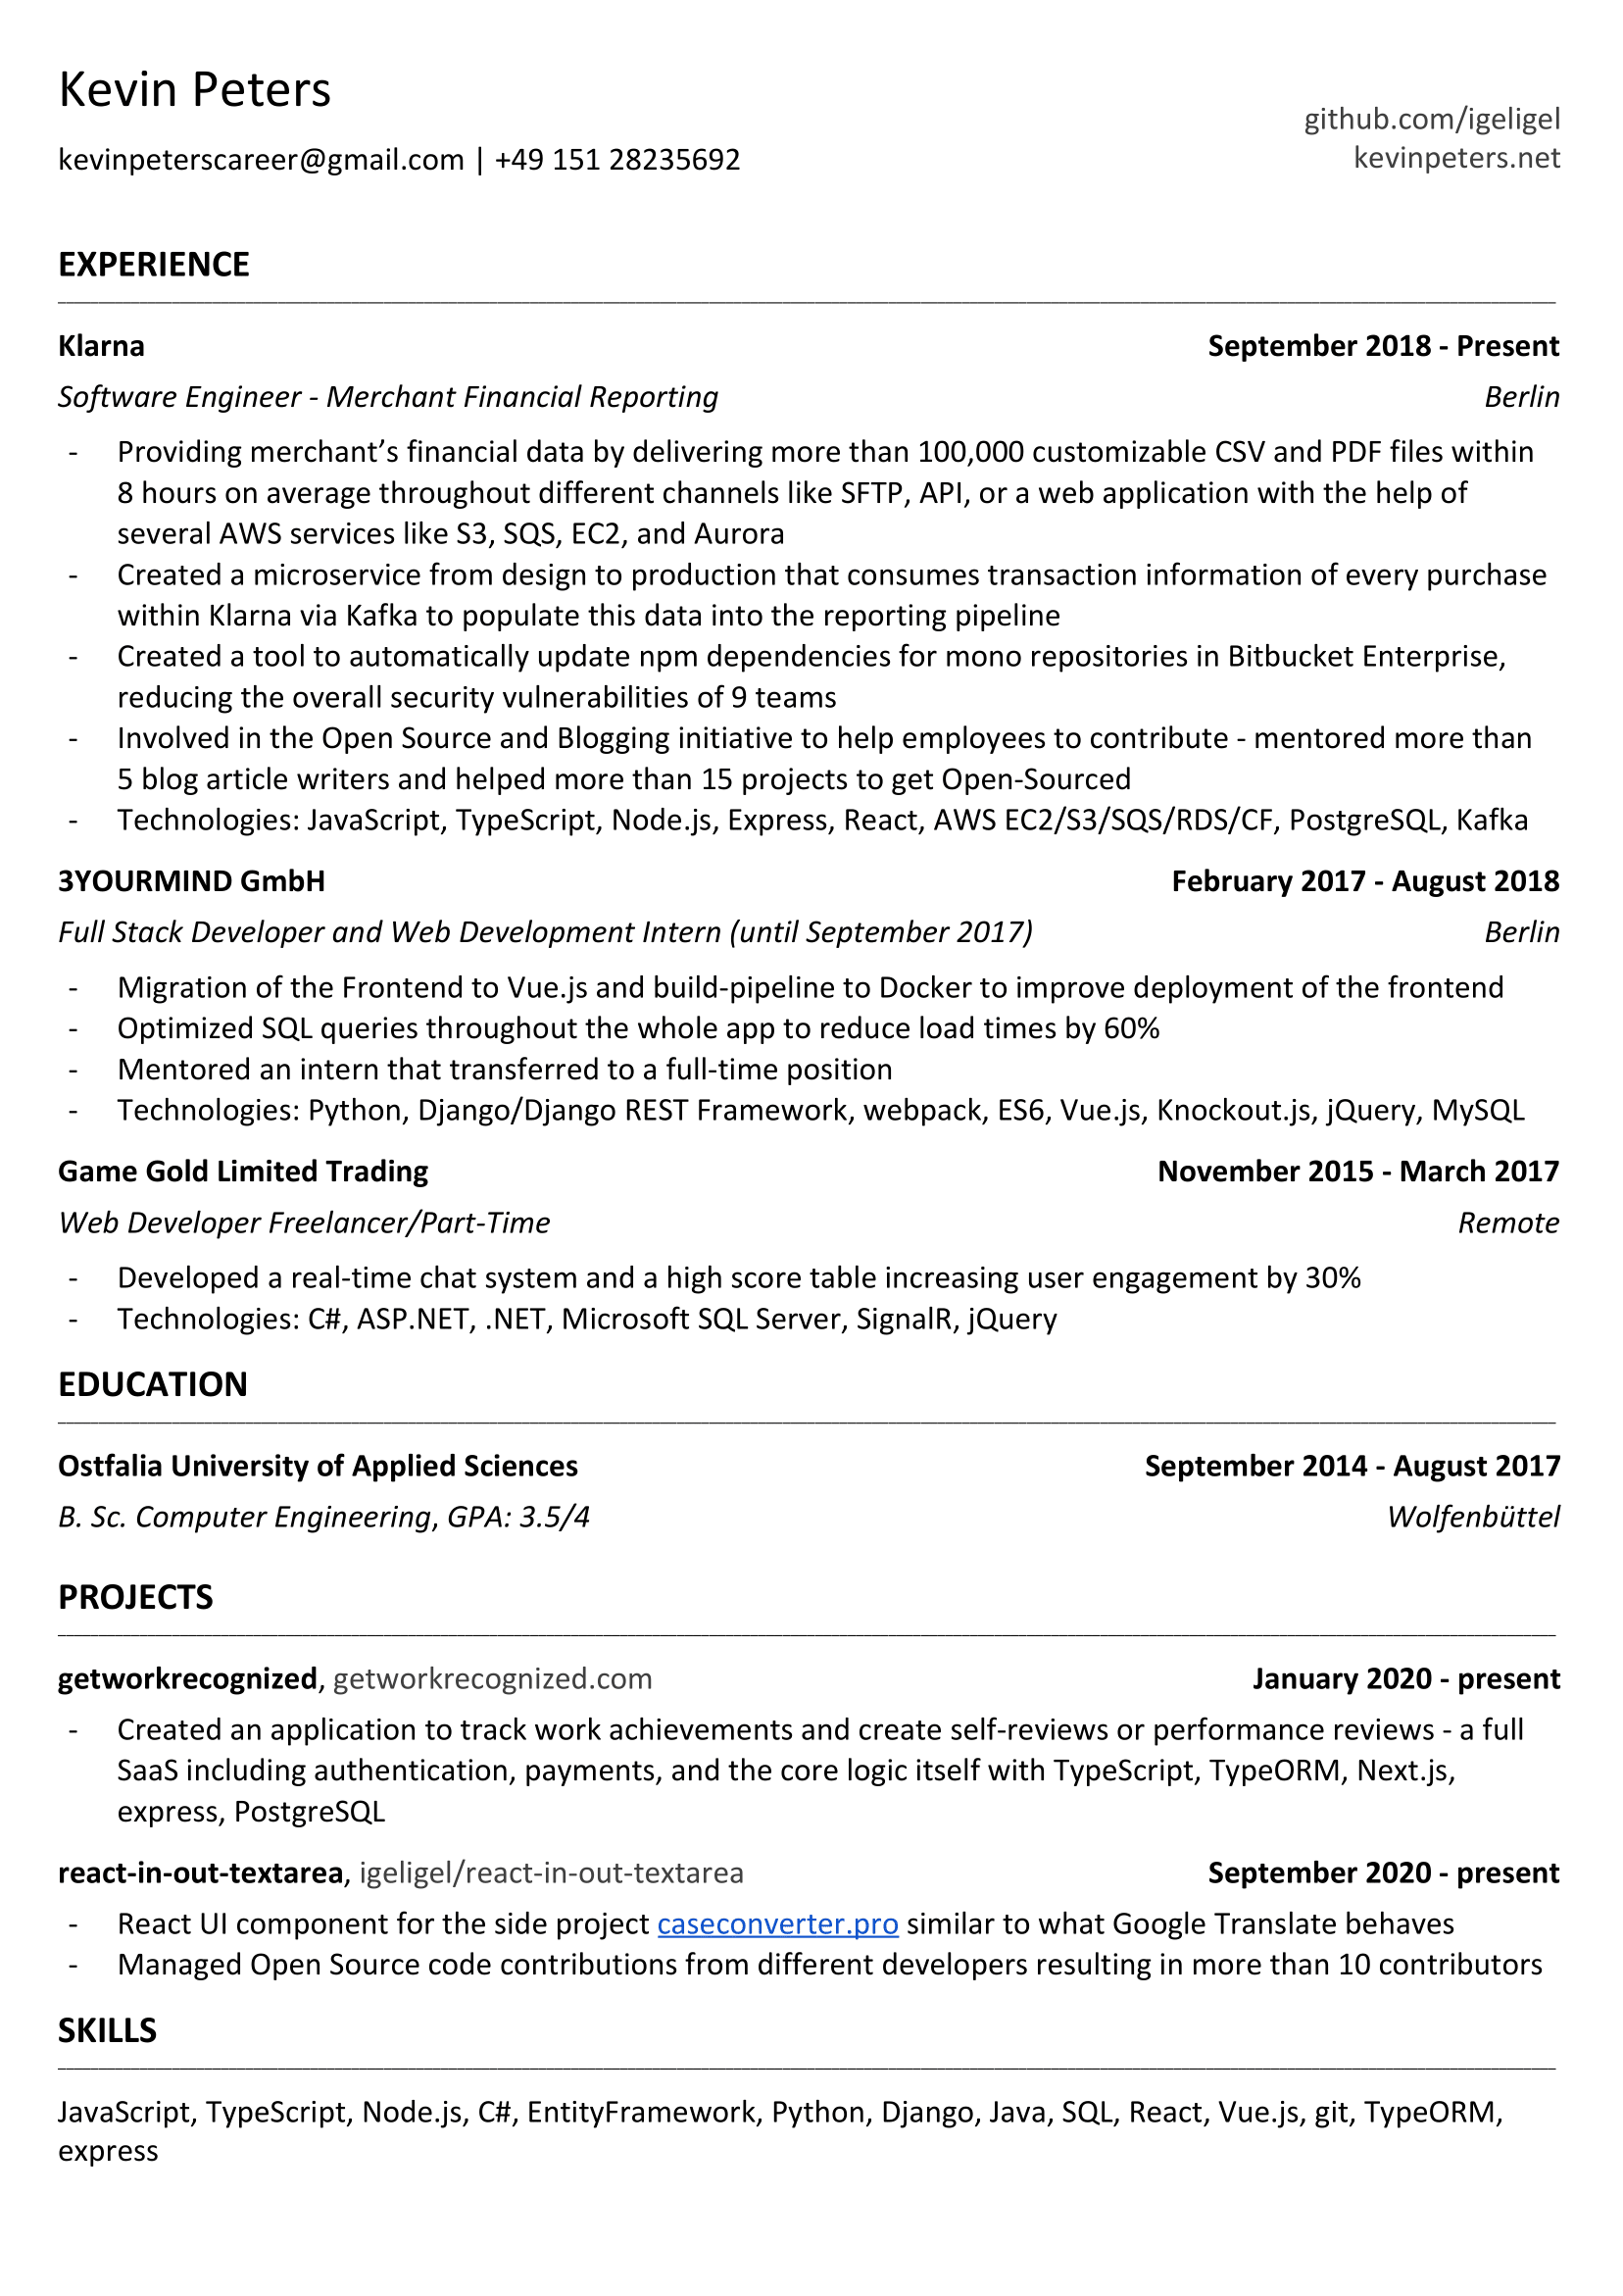 My resume as a short and concise resume